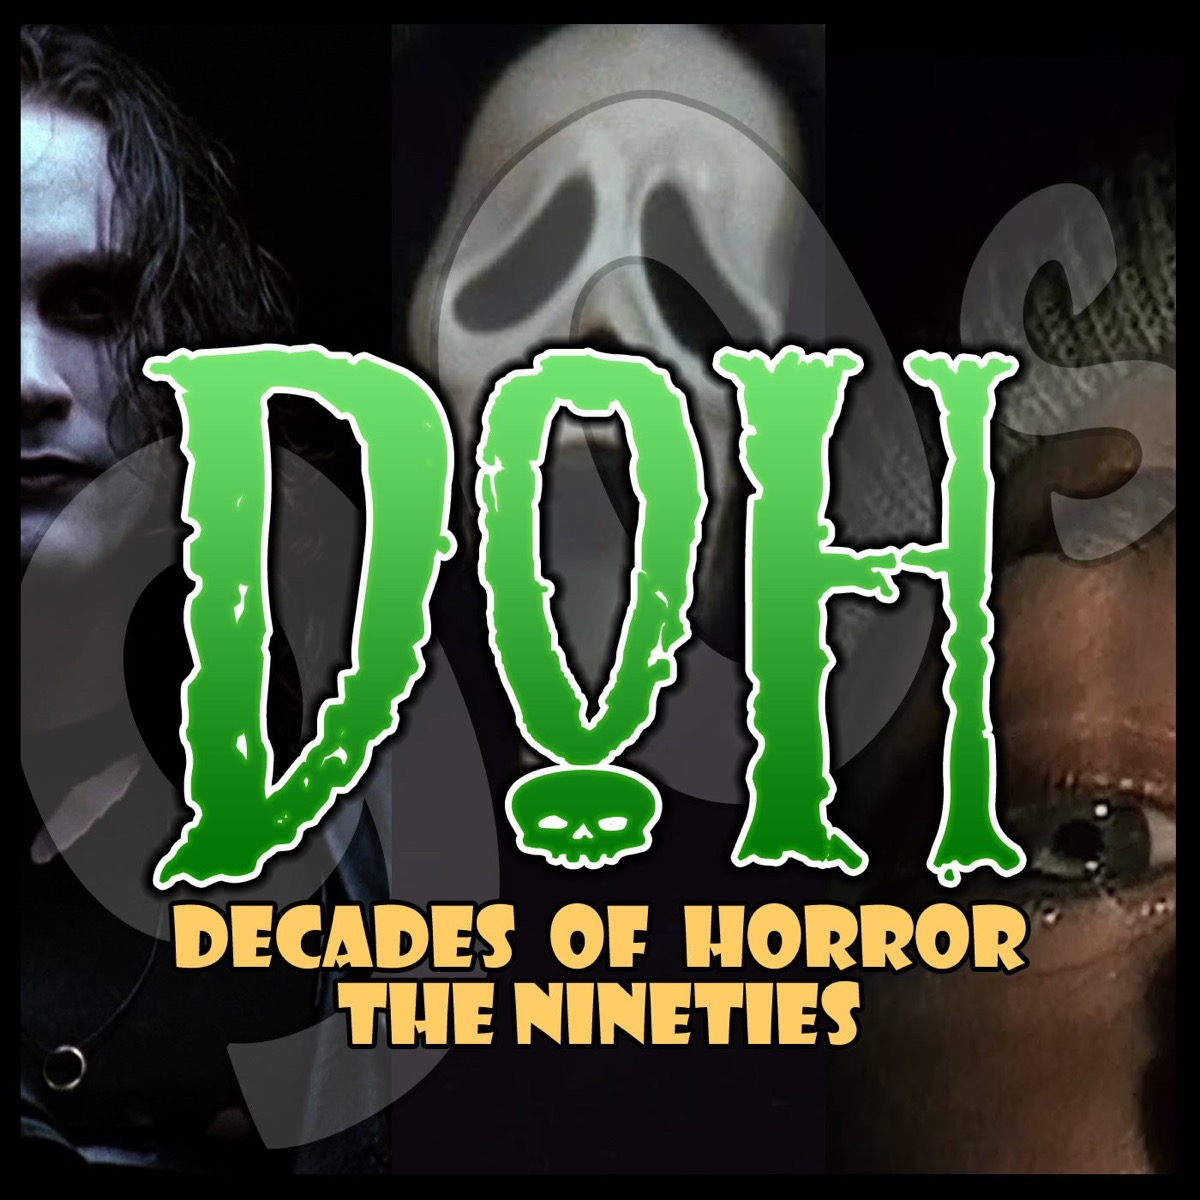 The Others (2001) — Episode 40 — Decades of Horror 1990s And